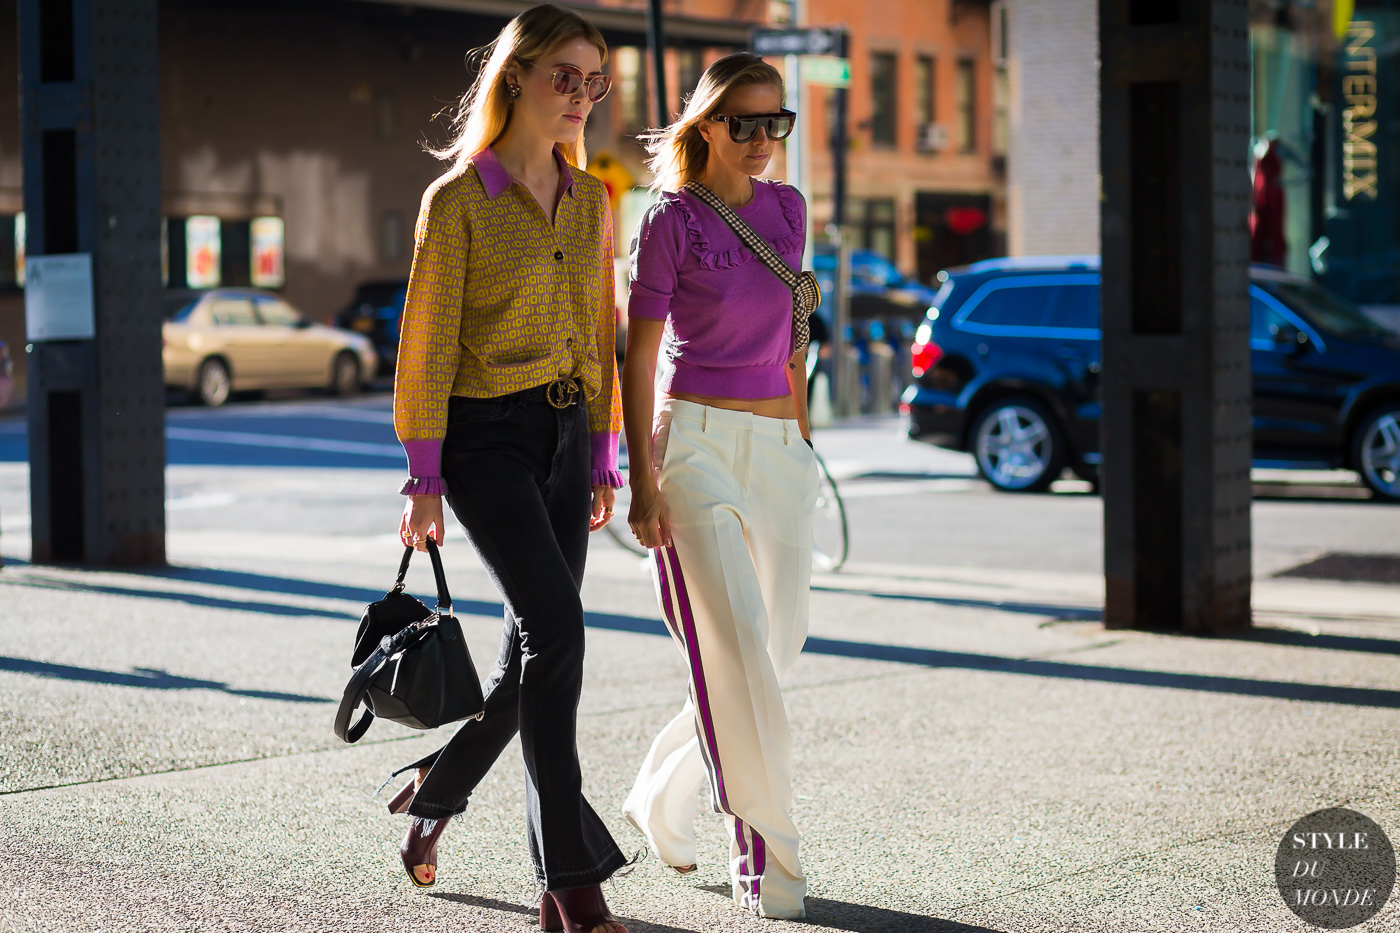 annabel-rosendahl-celine-aagaard-by-styledumonde-street-style-fashion-photography